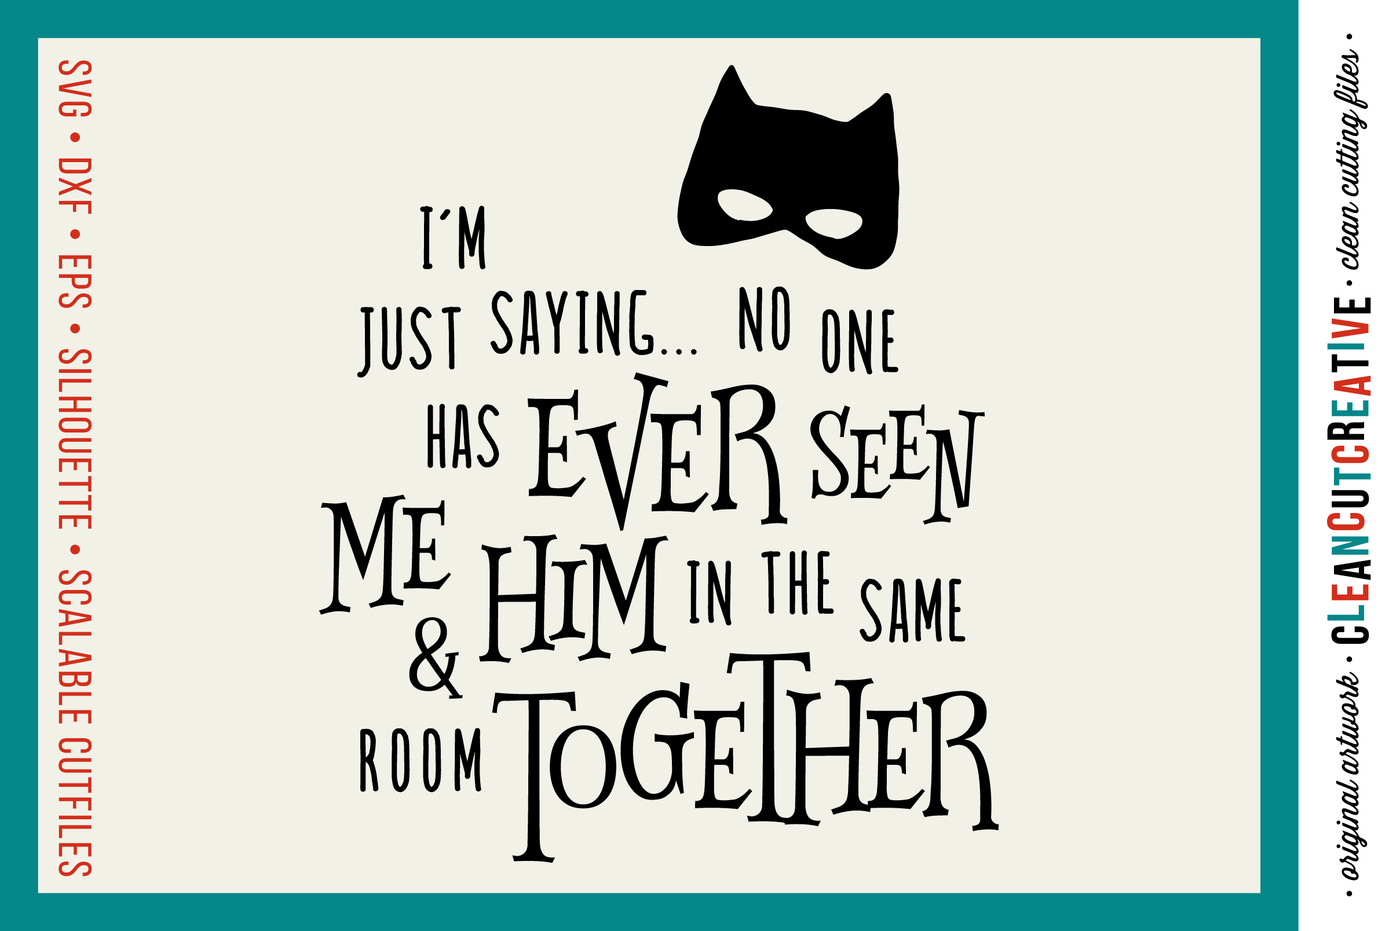 Boy Superhero Never Seen Together Svg Dxf Eps Png Cut File Cutting File Clipart Cricut And Silhouette Clean Cutting Files By Cleancutcreative Thehungryjpeg Com